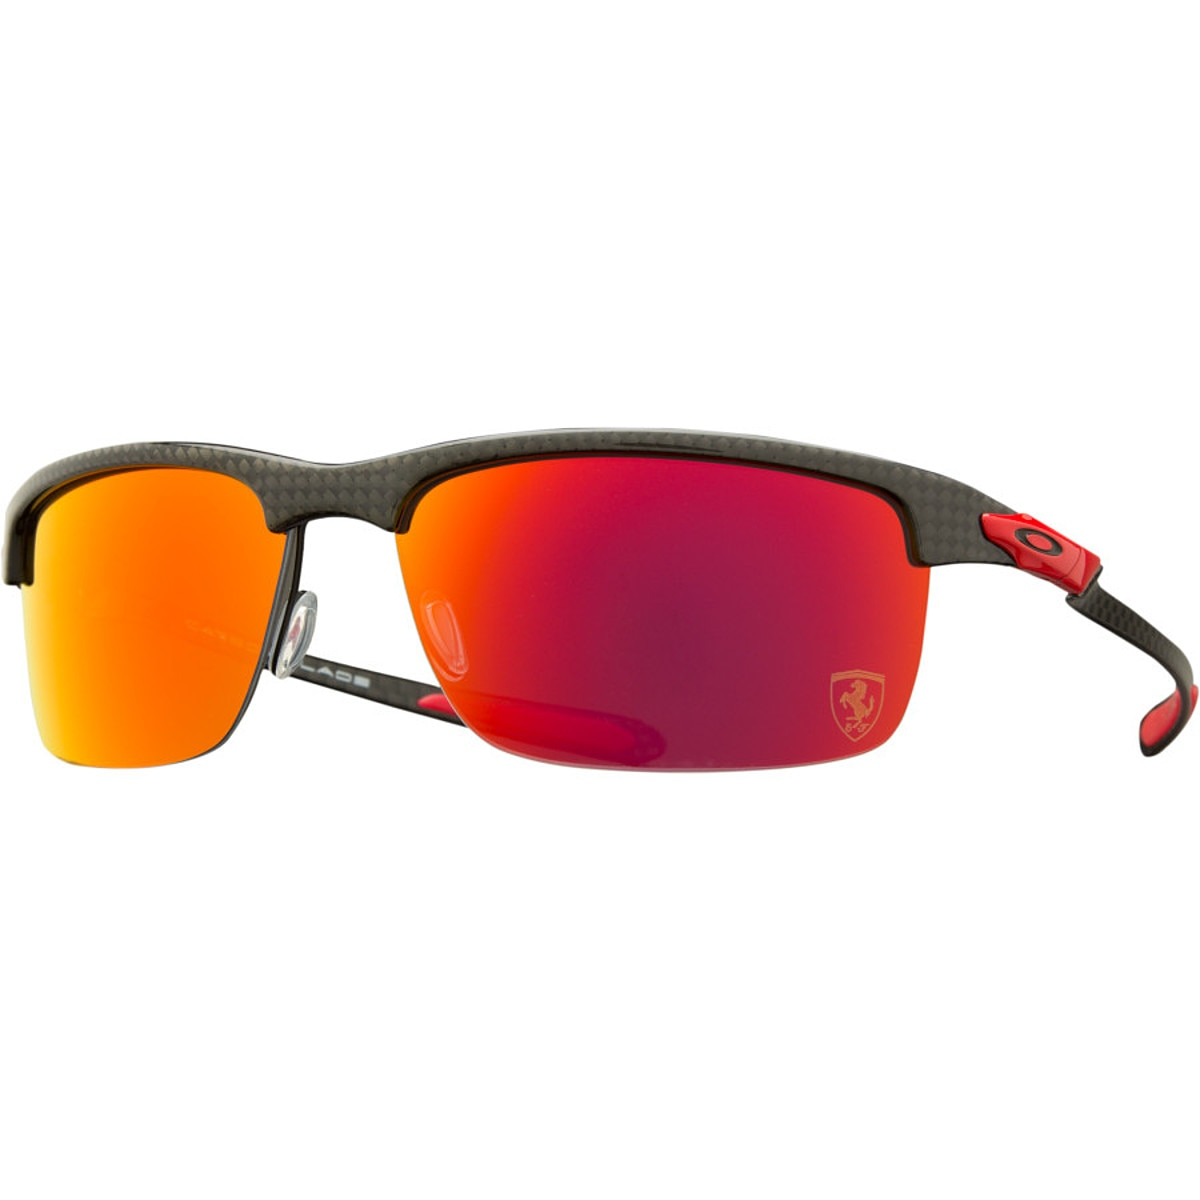 oakley eyewear qboy  Oakley Limited Edition Ferrari Carbon Blade Sunglasses